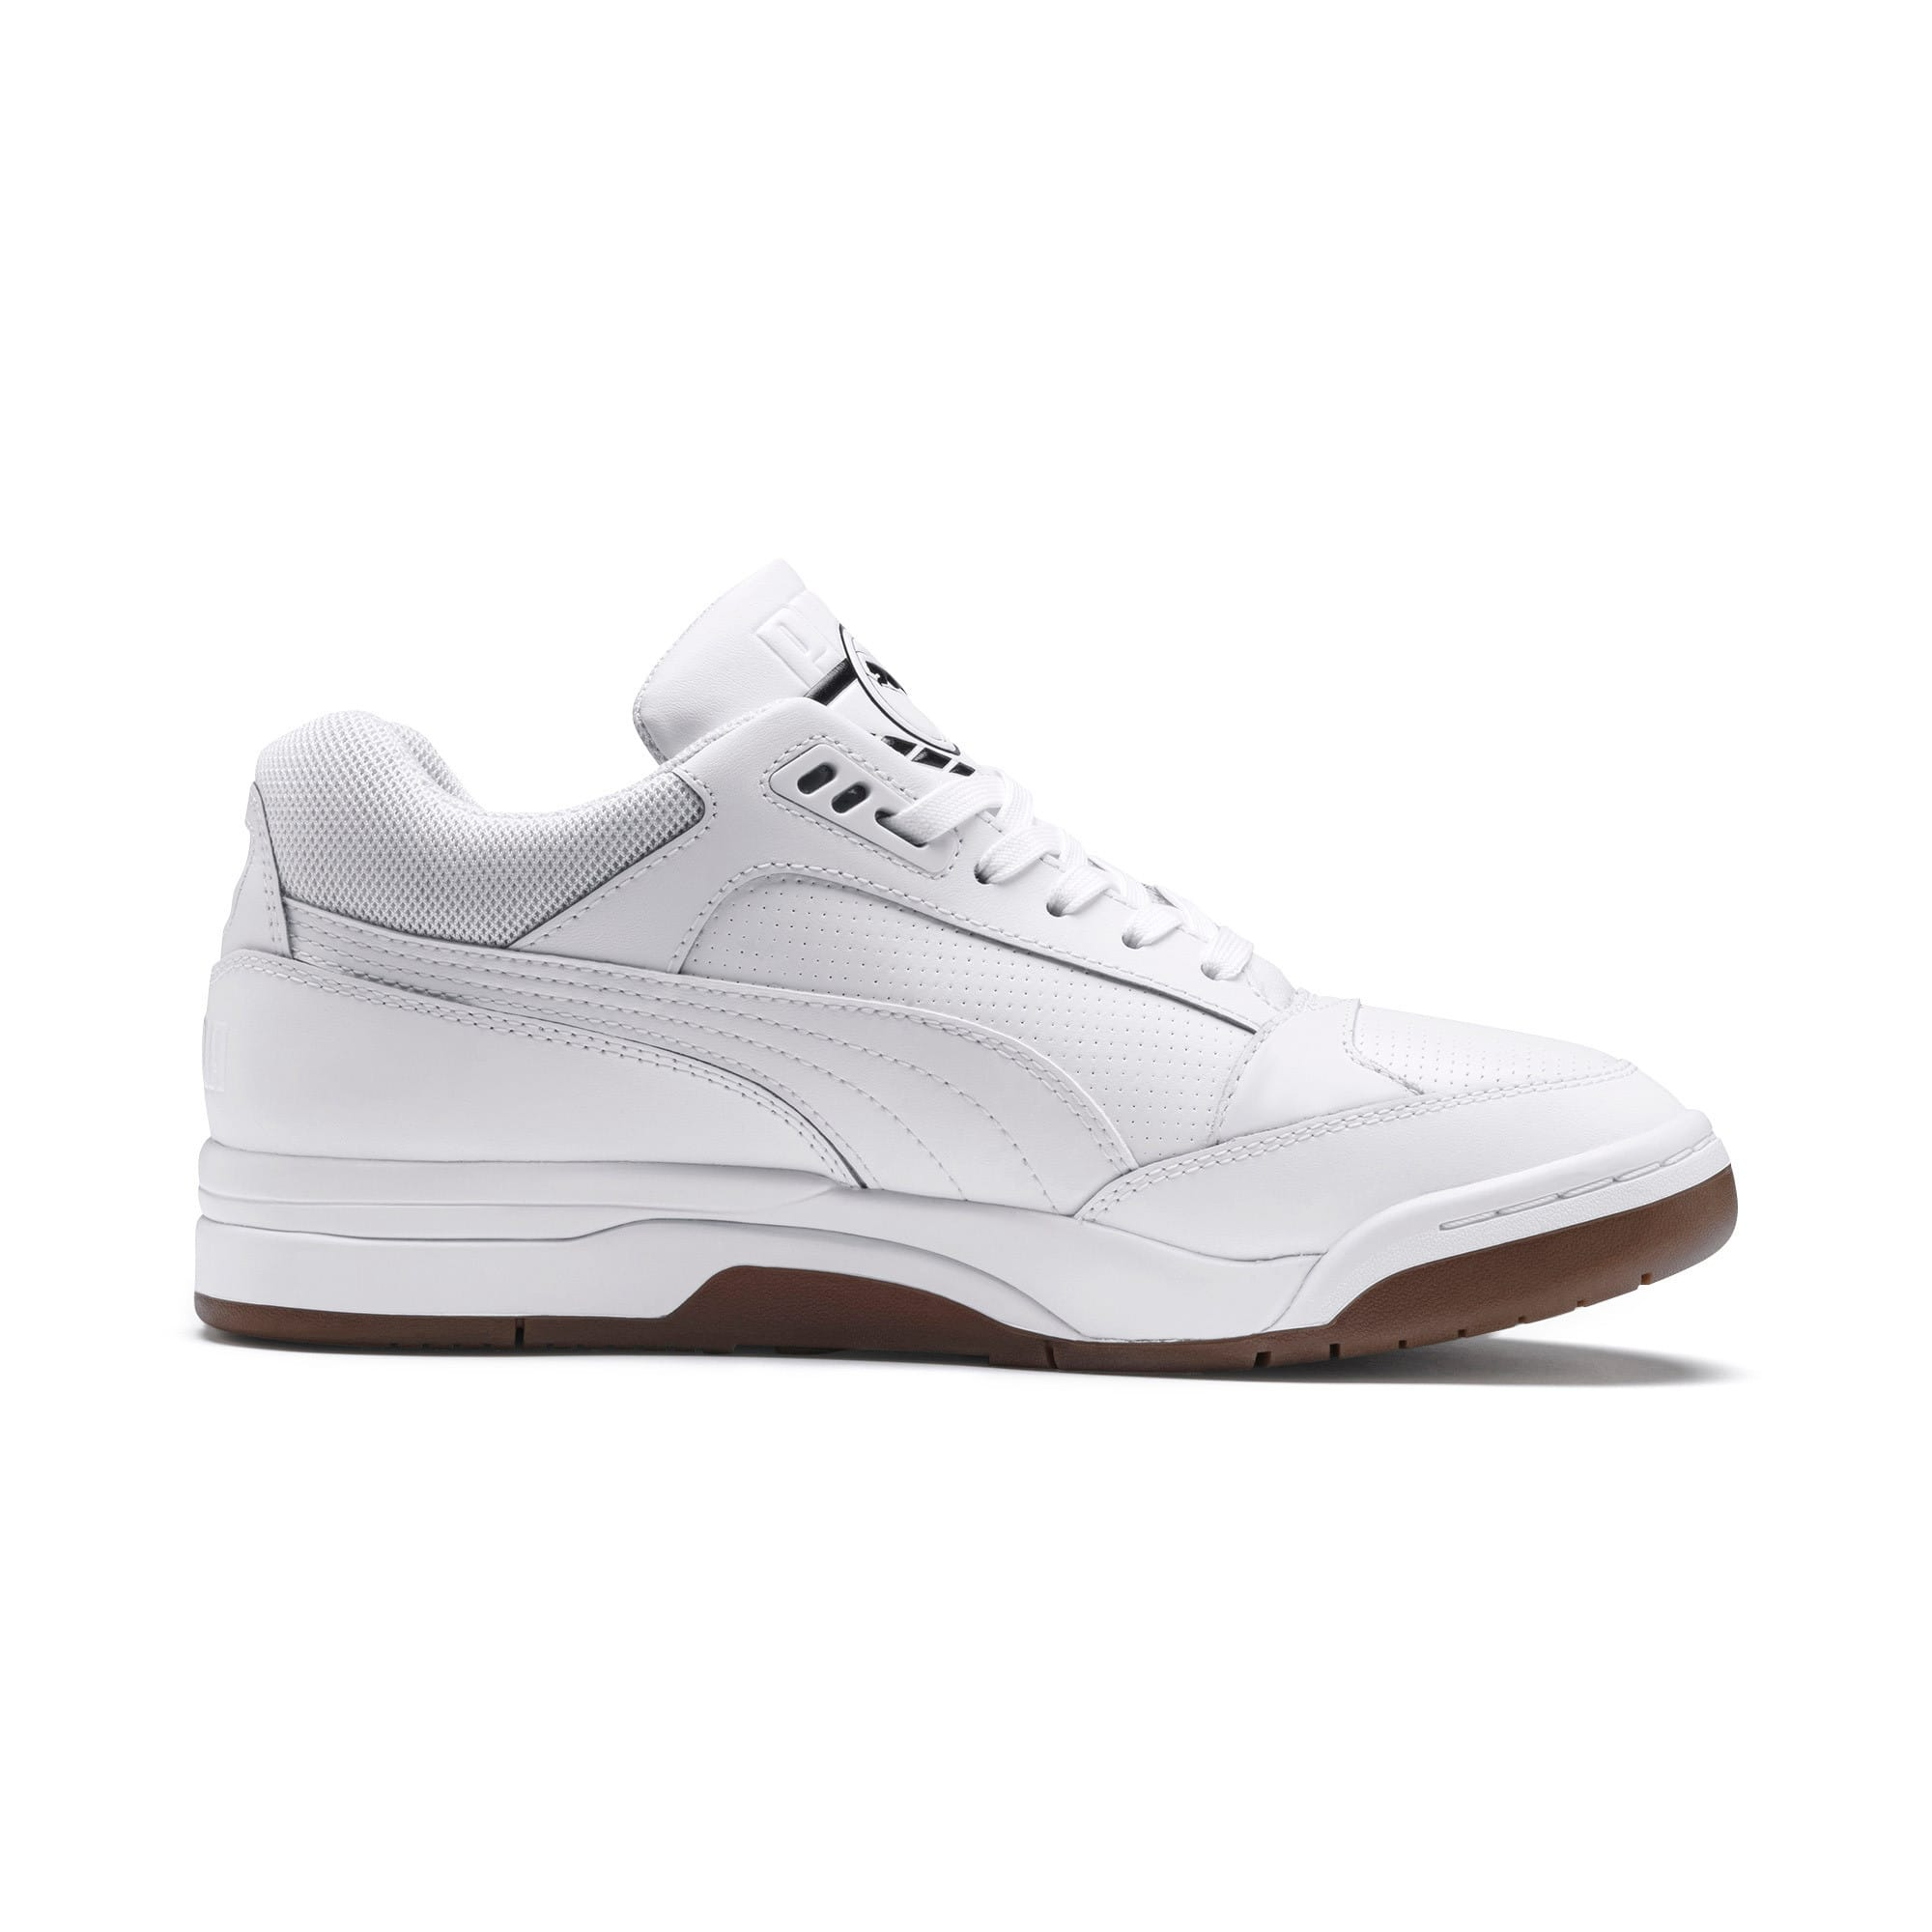 Anteprima 5 di Palace Guard Men's Basketball Trainers, Puma White-Puma White-Gum, medio